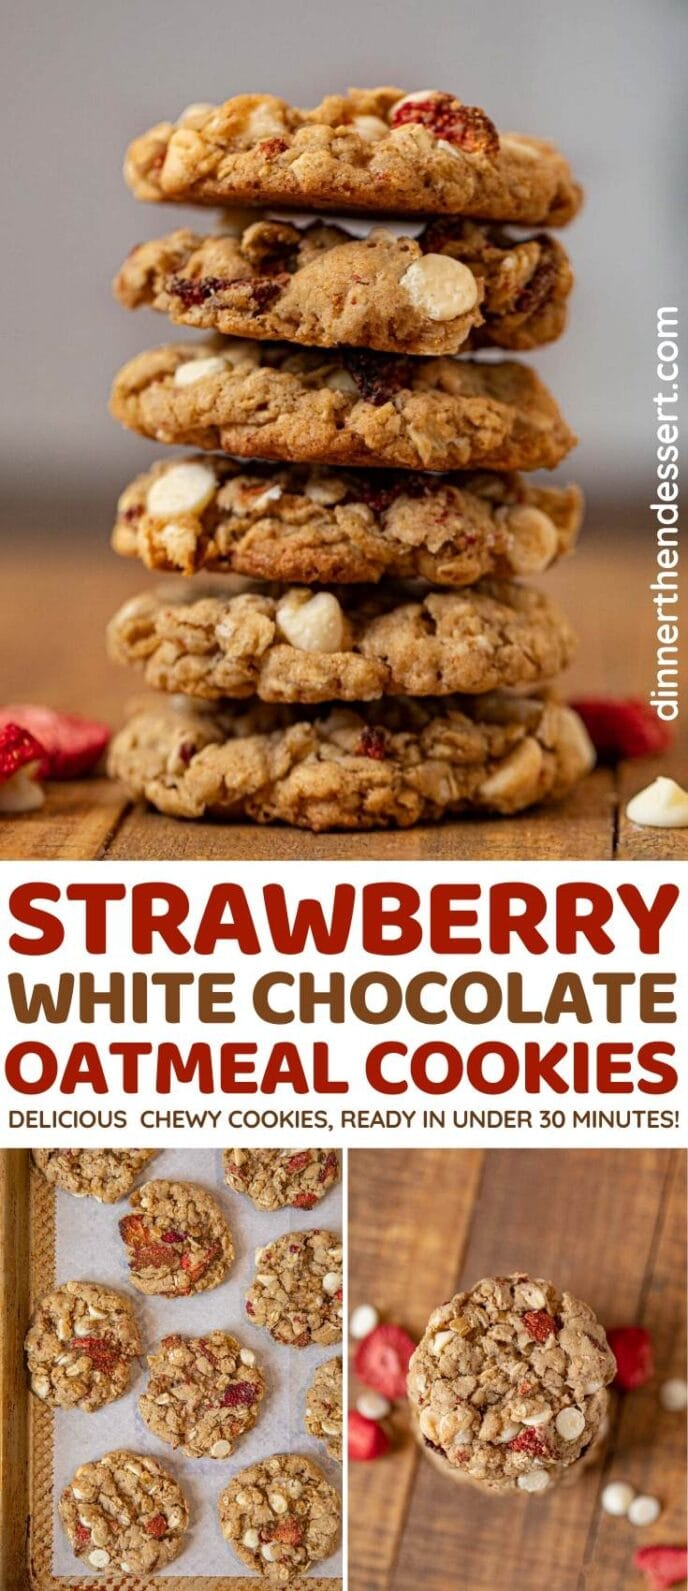 Strawberry White Chocolate Oatmeal Cookies collage